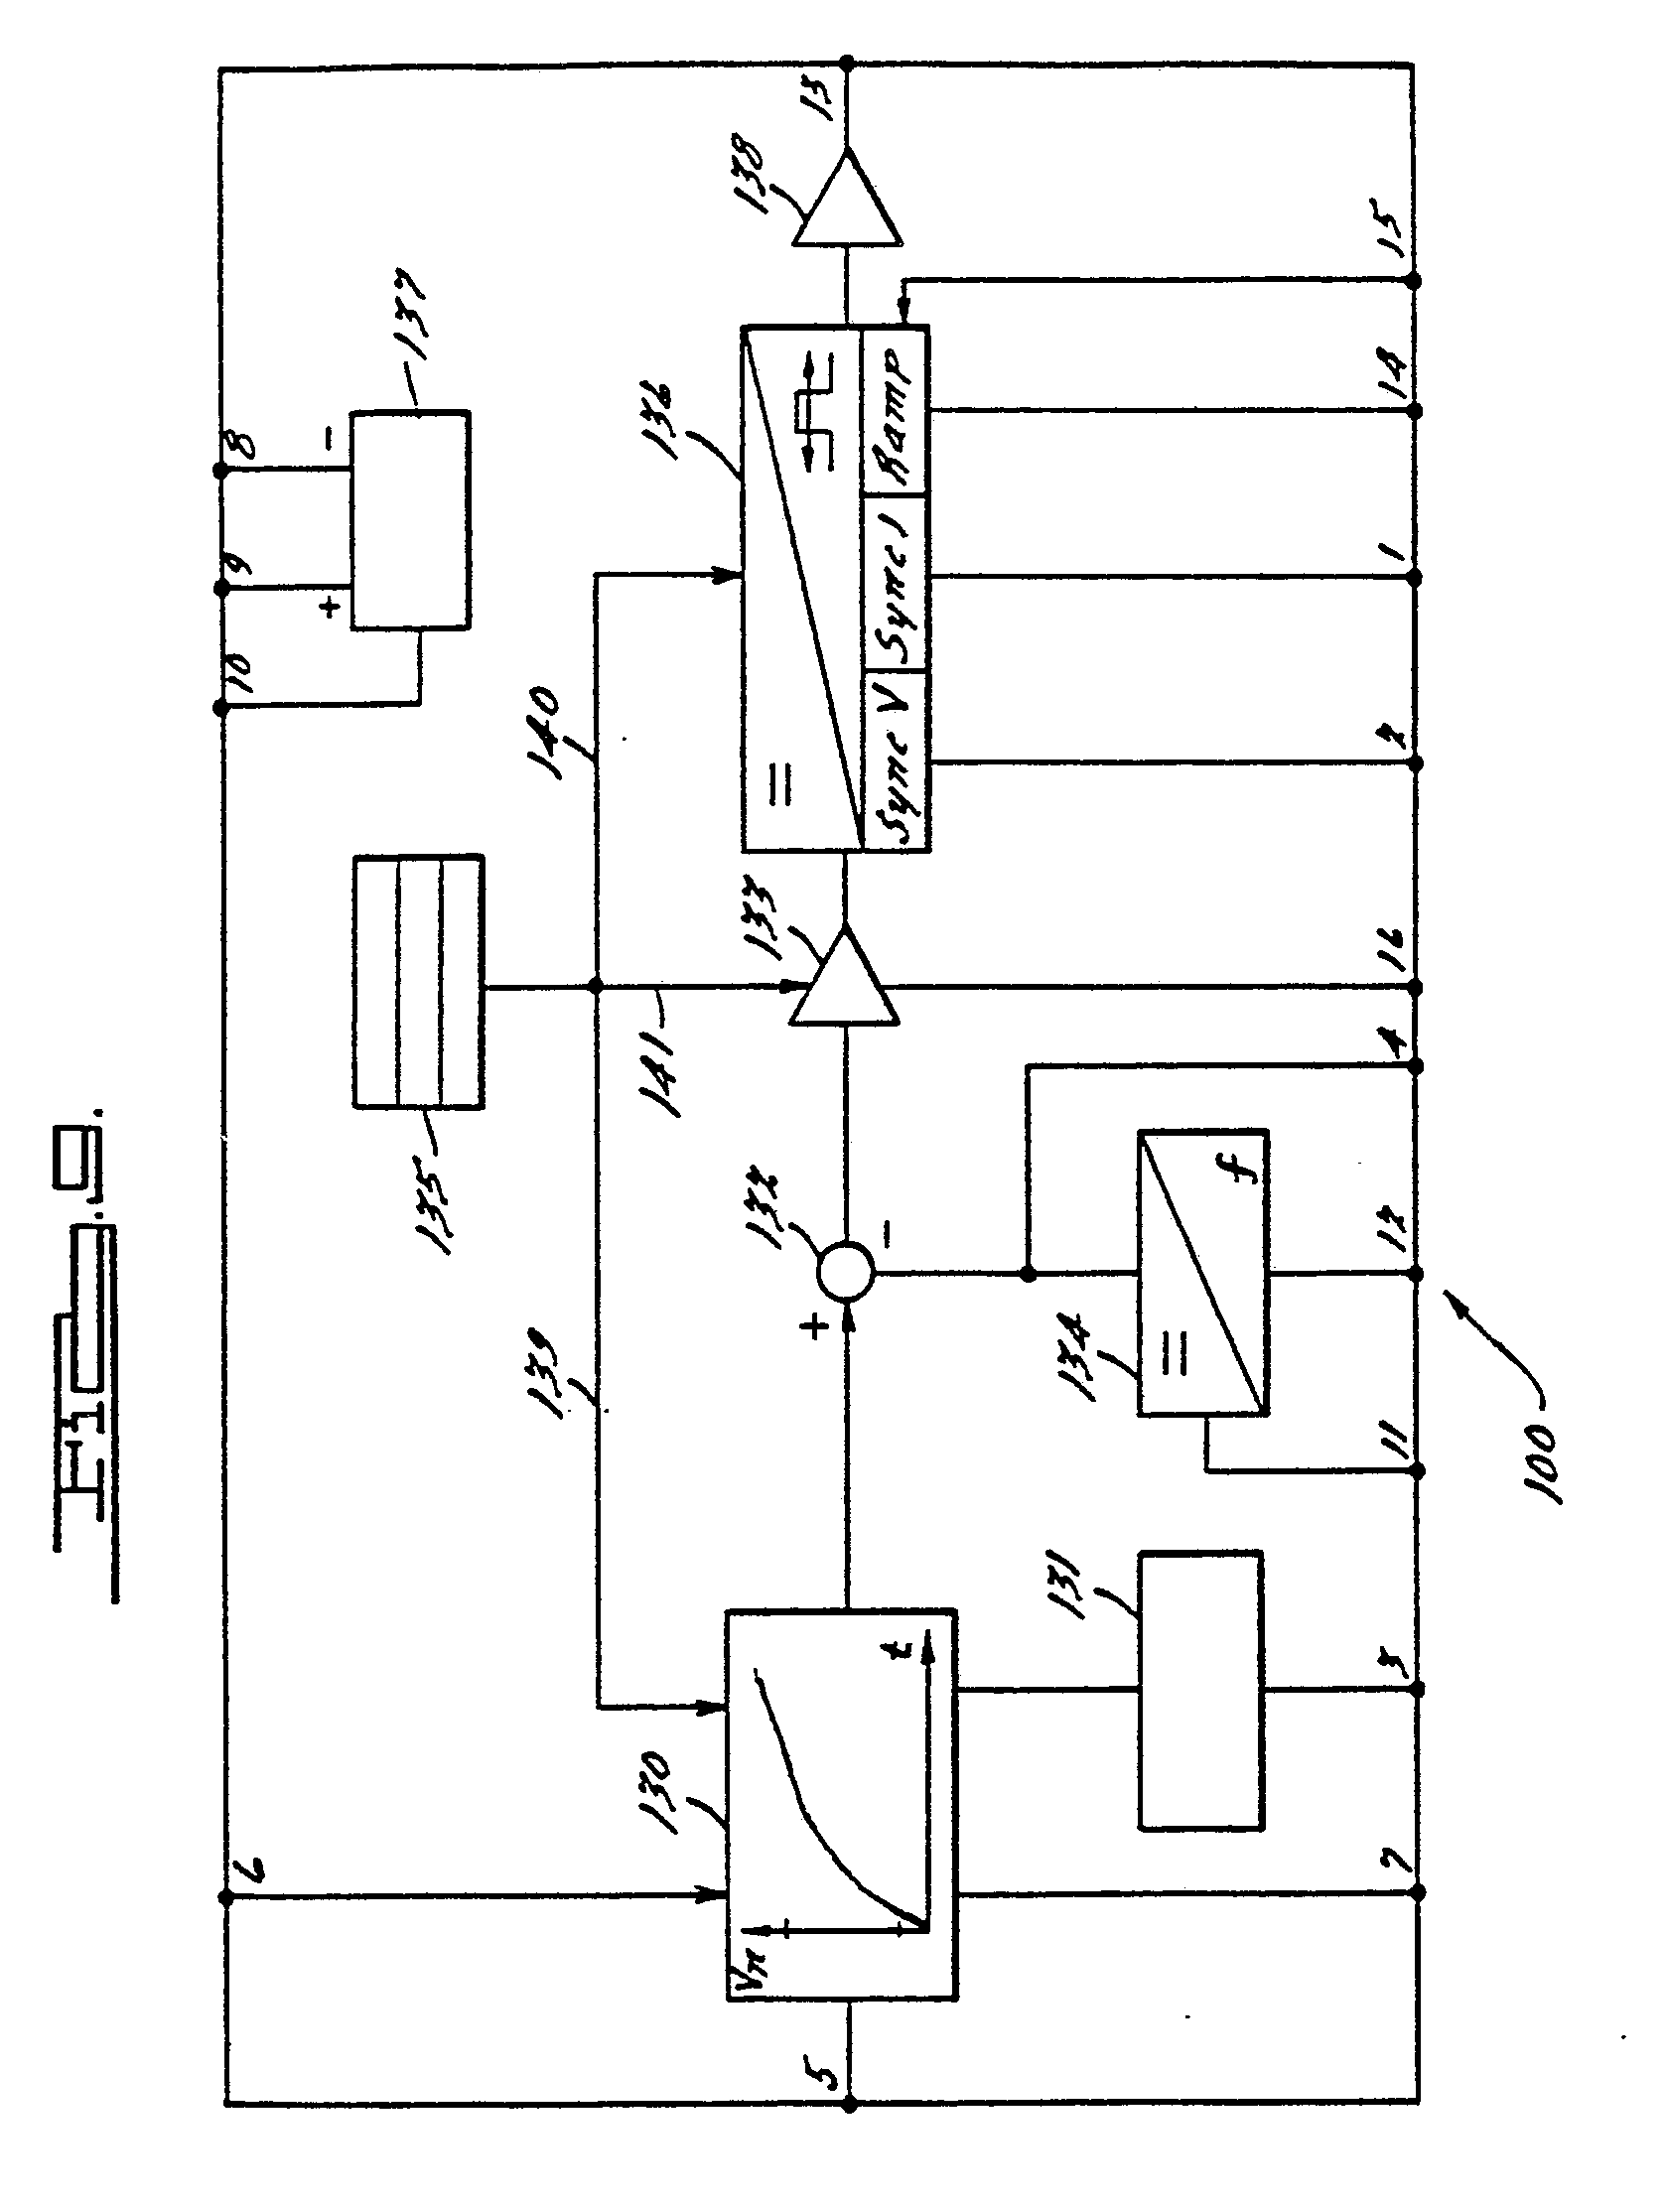 speed control circuit for an electric power tool google patents